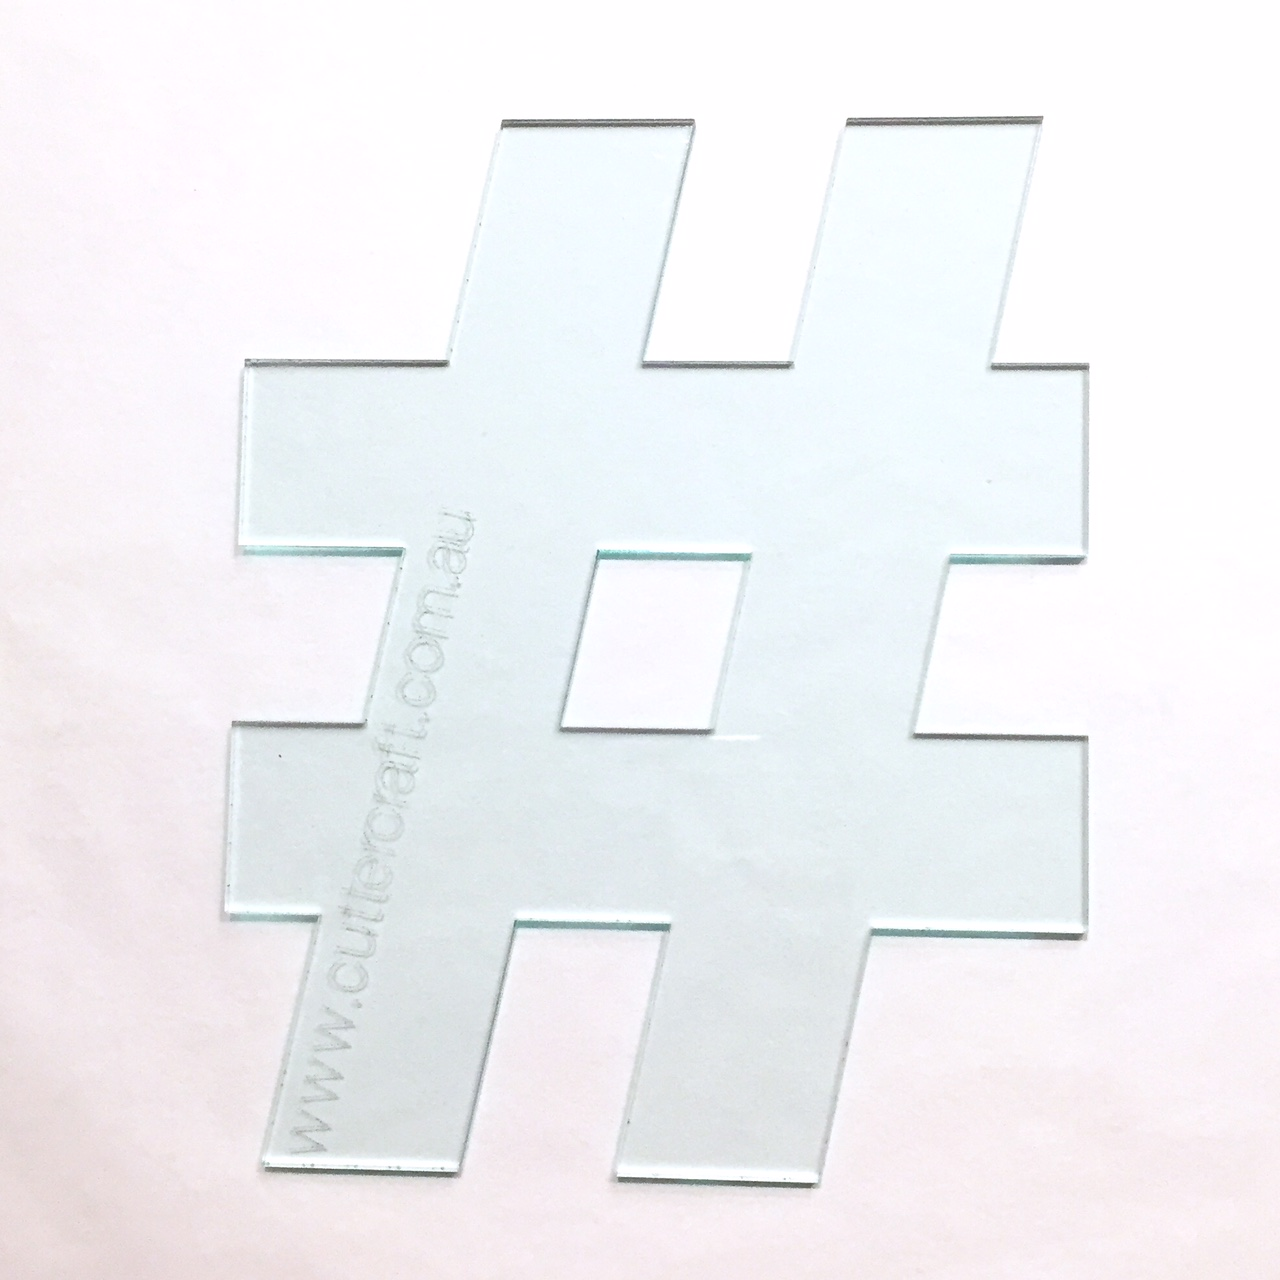 29cm high wide hashtag symbol large templates